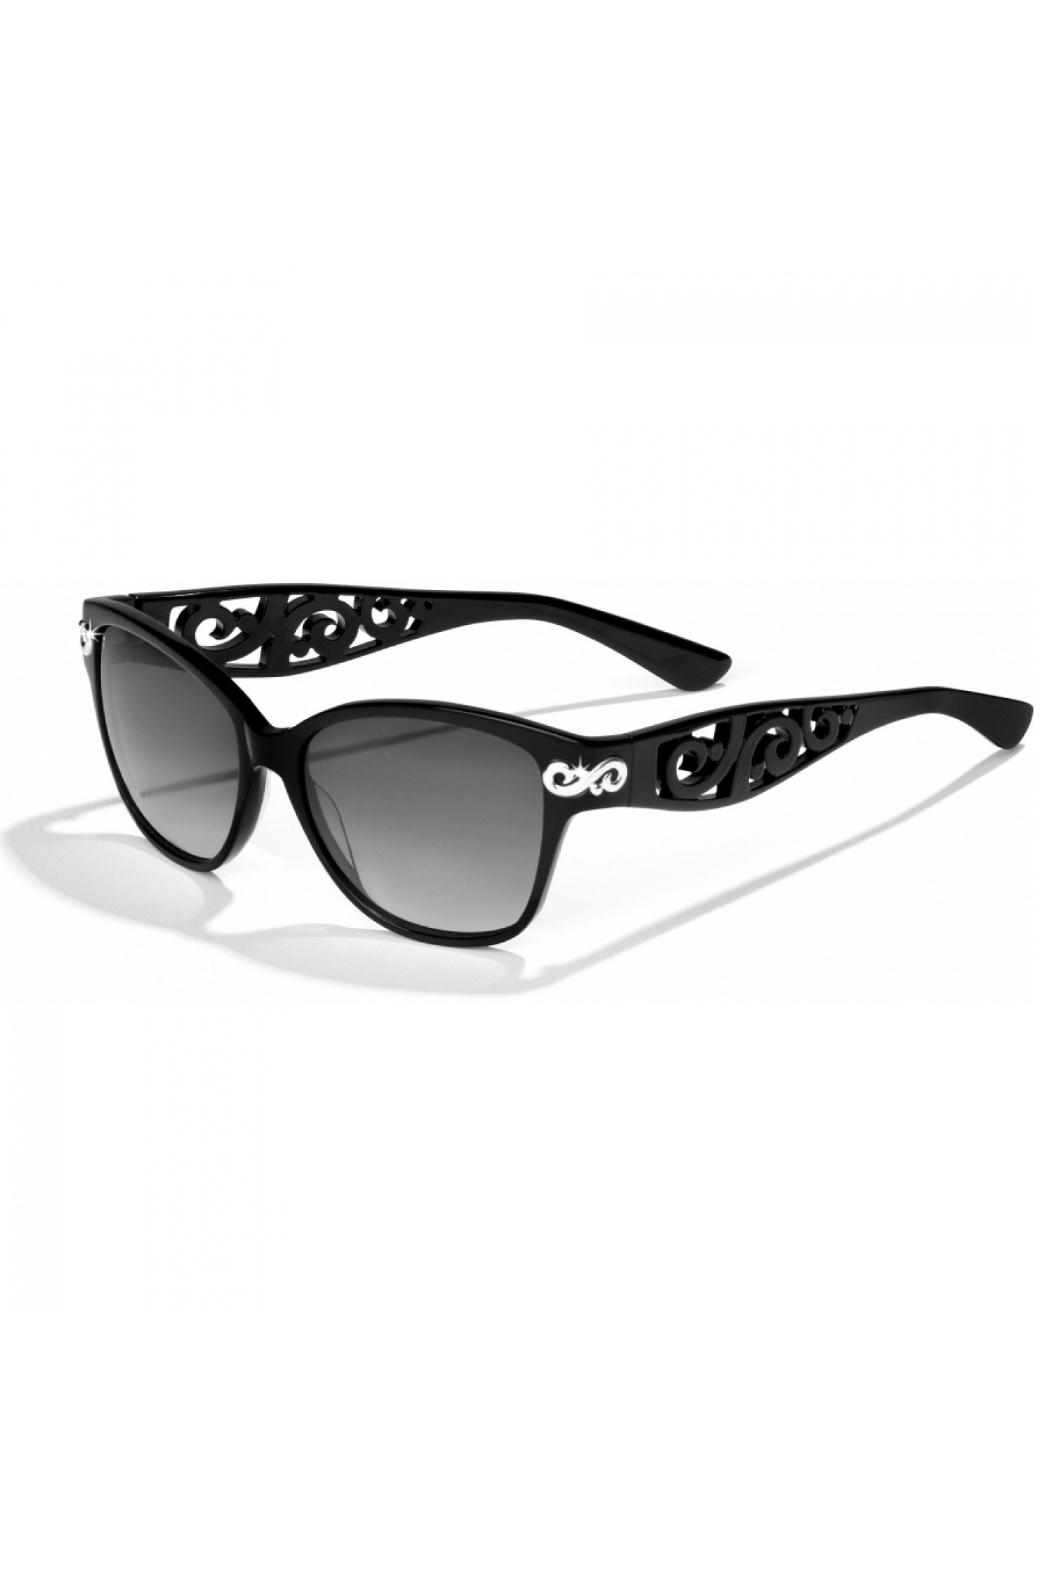 Brighton Contempo Chic Sunglasses - Main Image